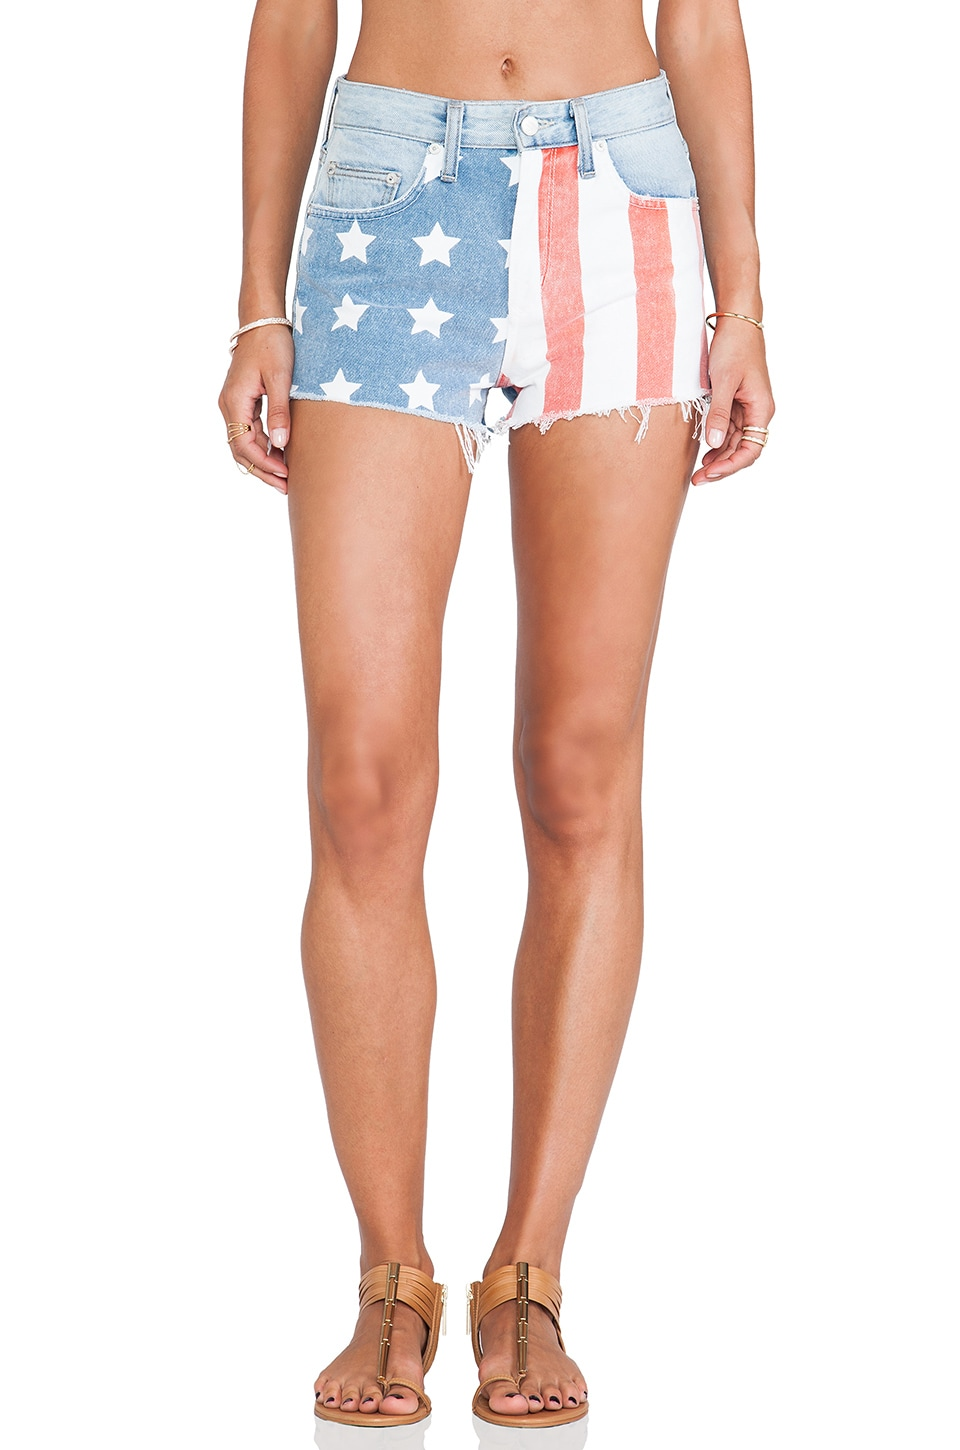 Lovers + Friends Americana Cut Off Shorts in Denim